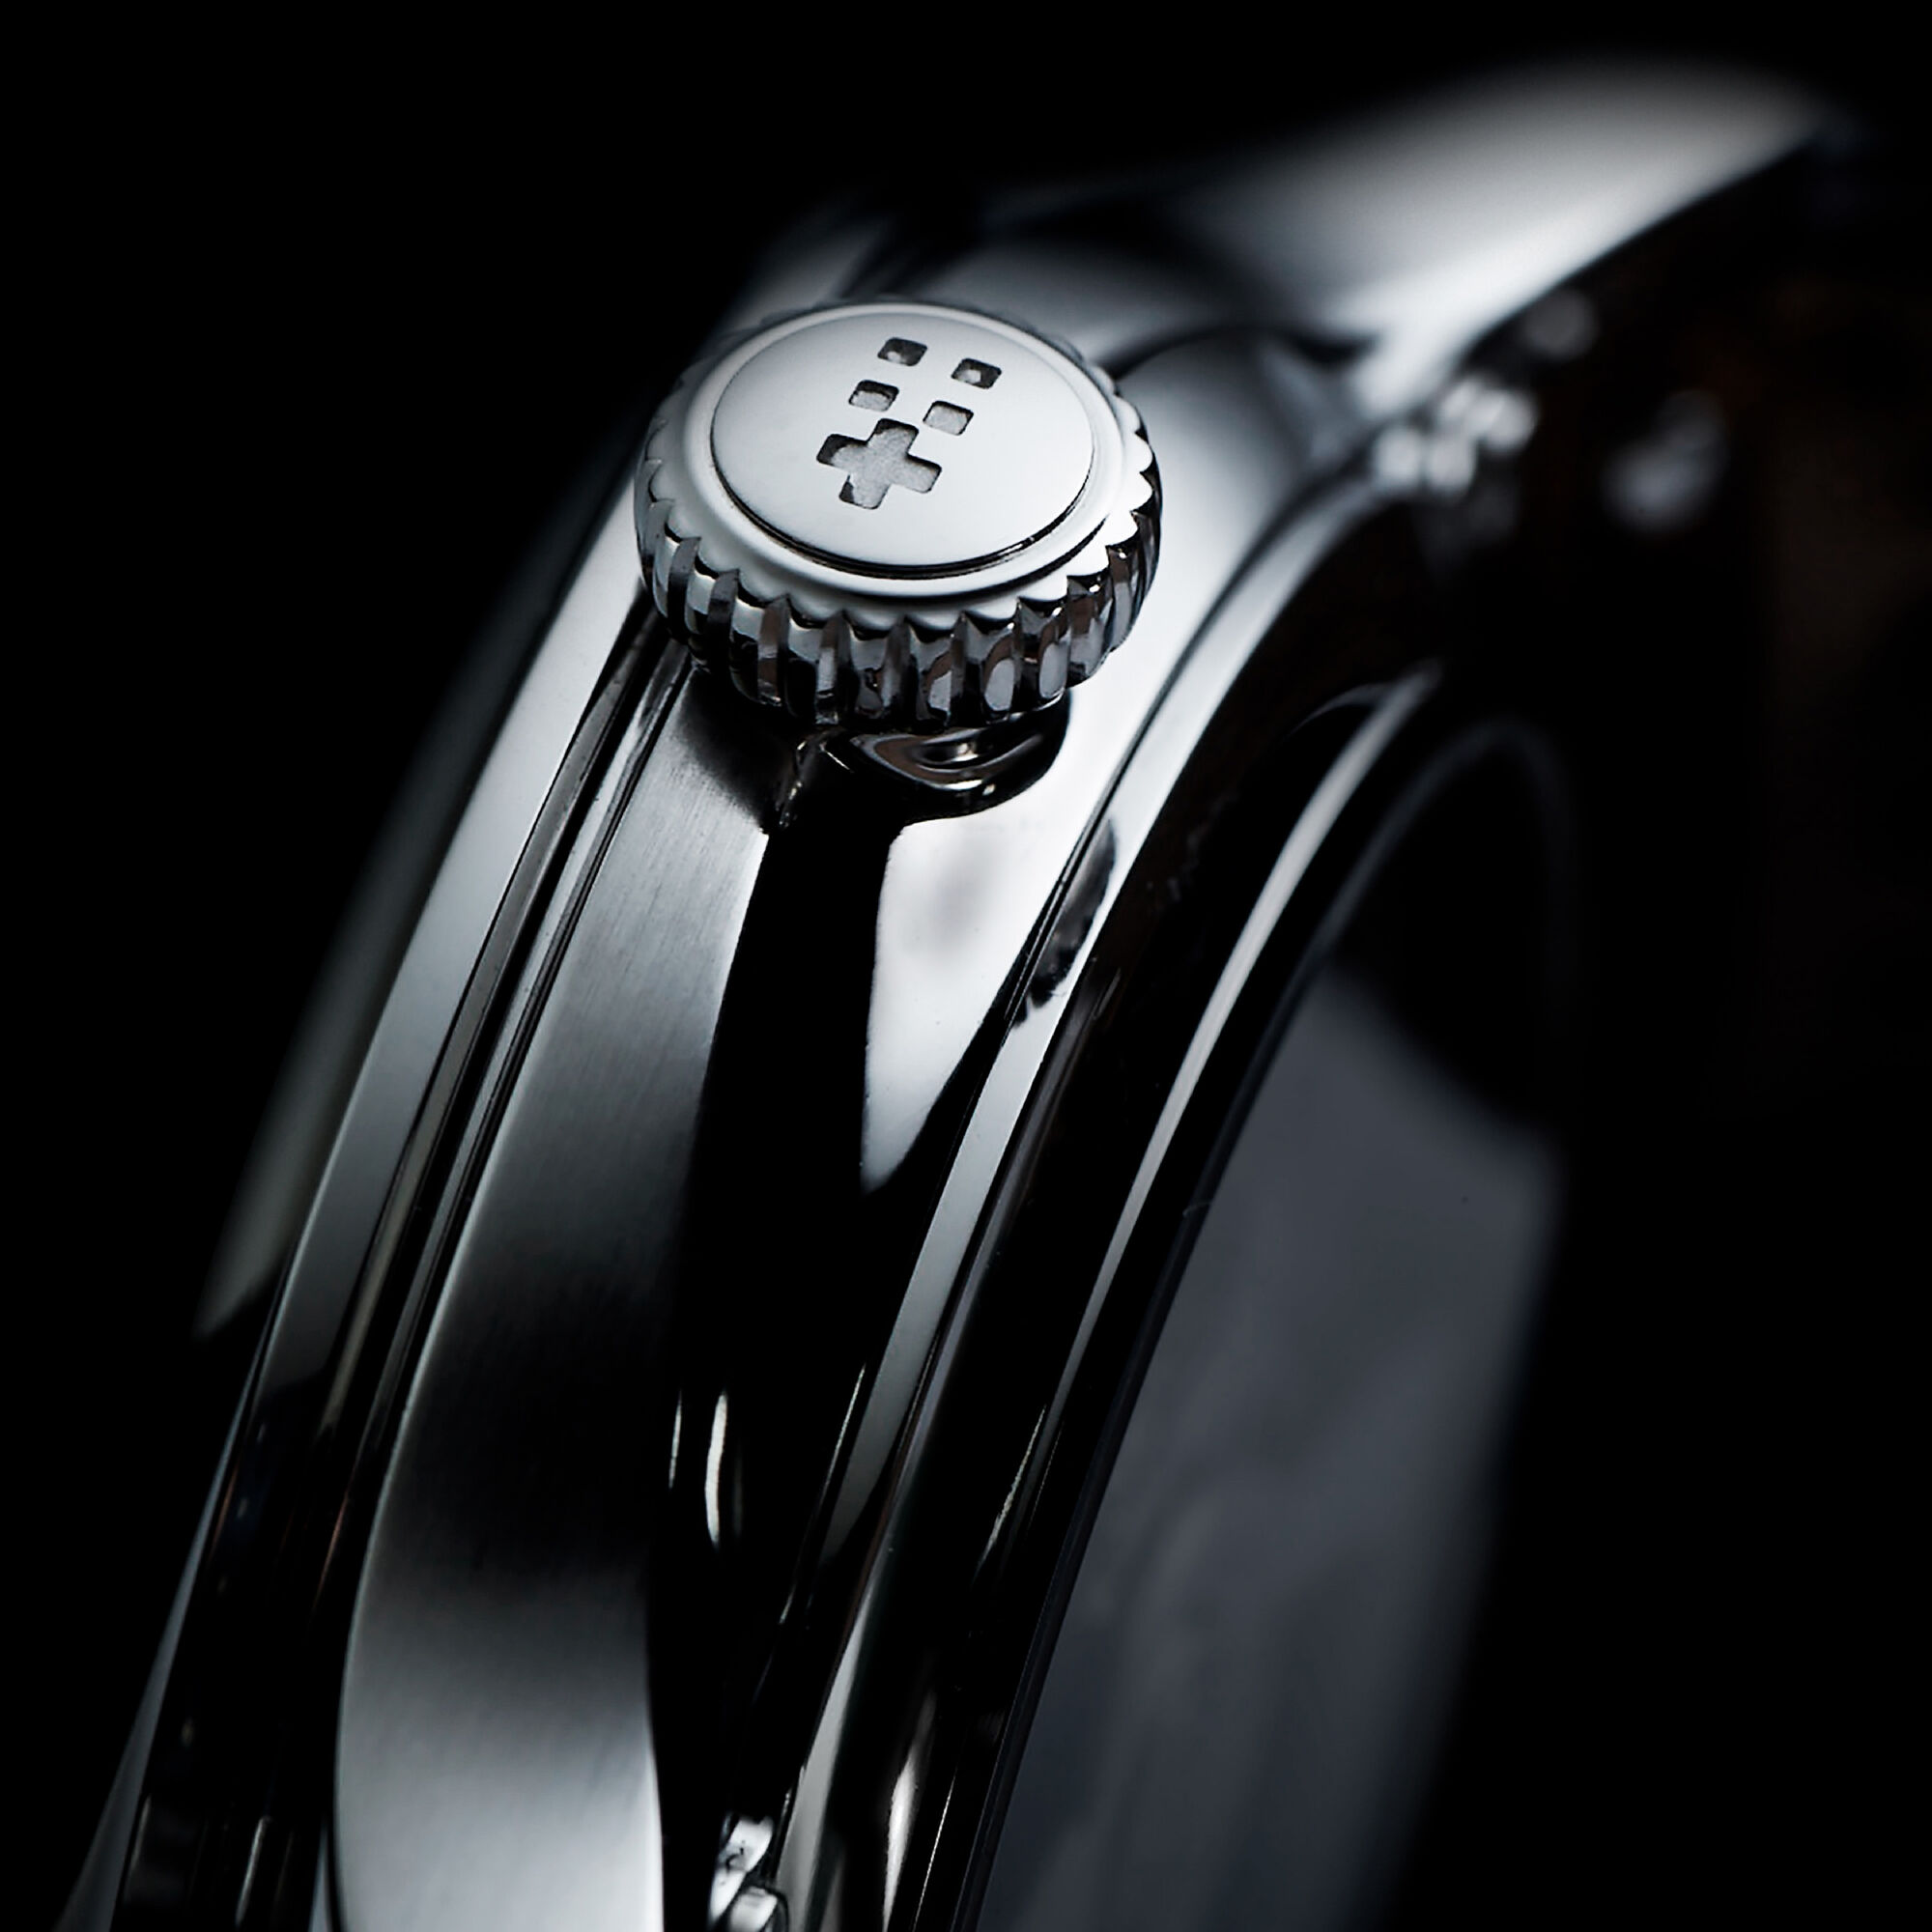 C1 Power Reserve Chronometer